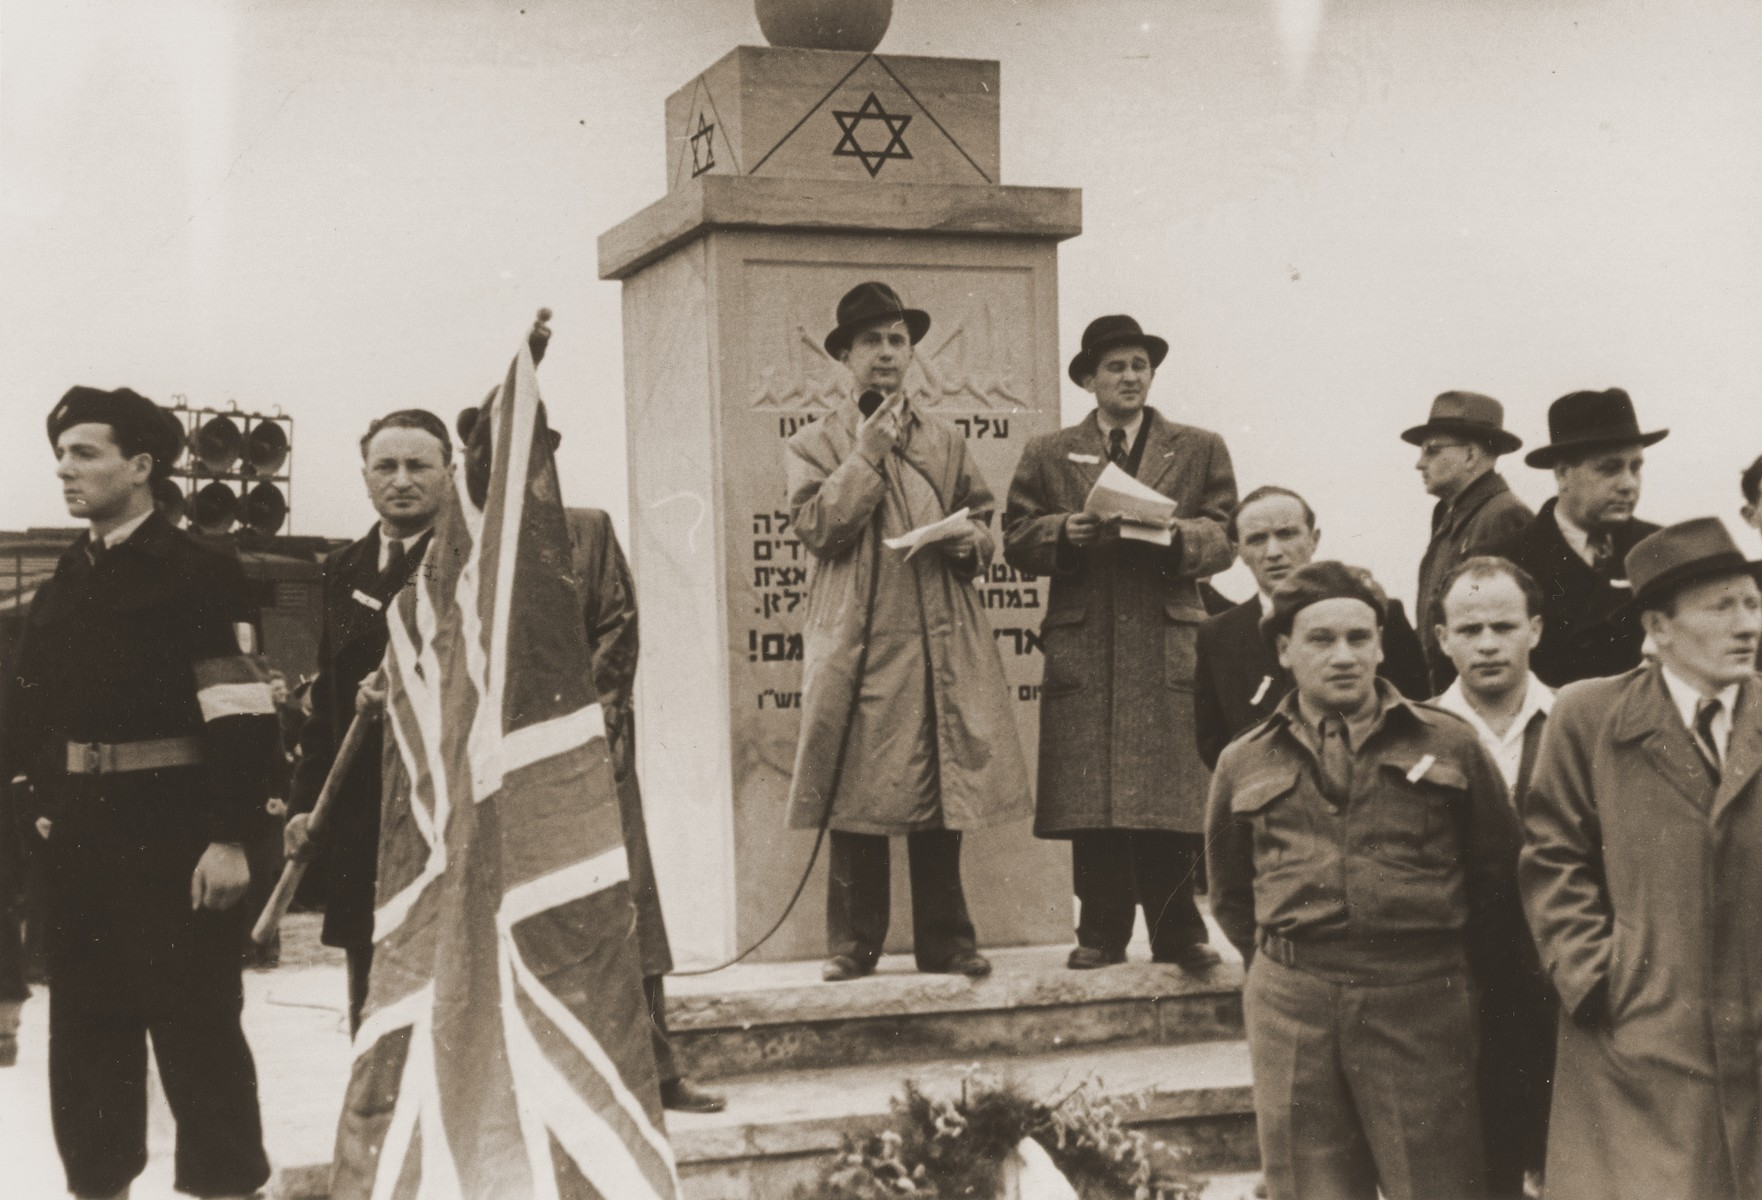 Jewish DPs take part in a public ceremony at the dedication of the Bergen-Belsen memorial.  In front of the memorial are Paul Trepman and Rafael Olewski.  Also pictured are Josef Rosensaft, Shmayahu Bloch, Winik, Karl Katz and Berel Dov Laufer.